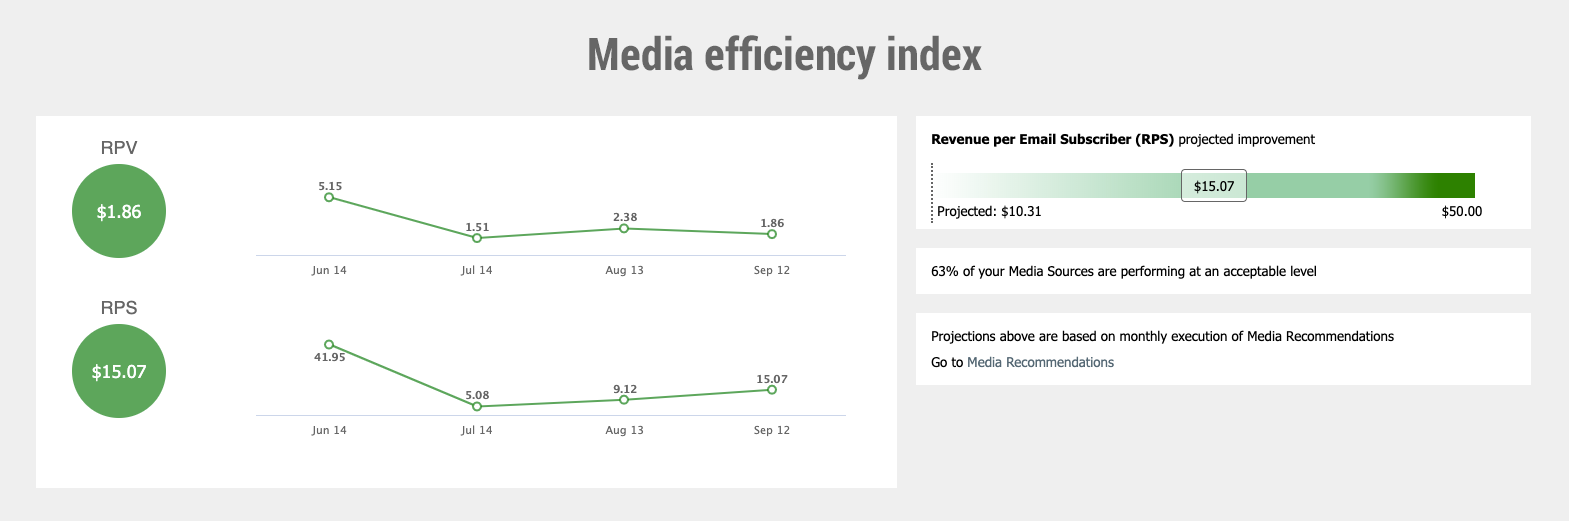 Media efficiency index